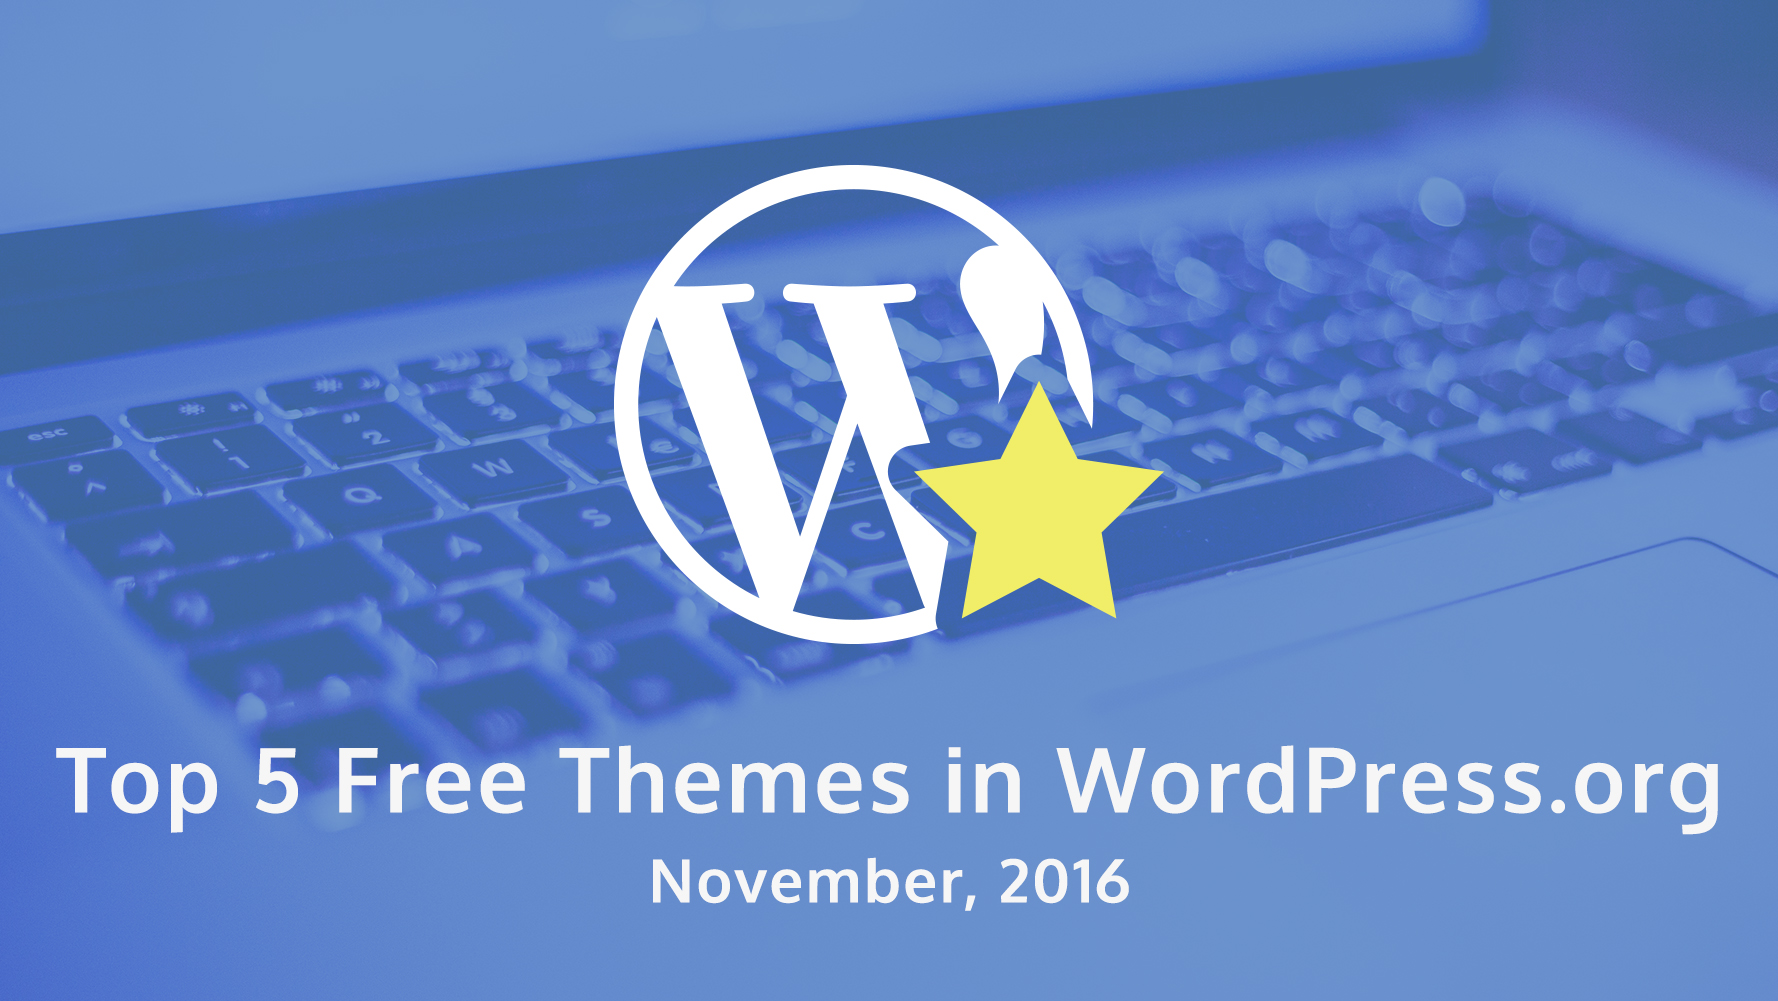 Top 5 Free Themes in WordPress.org – November 2016